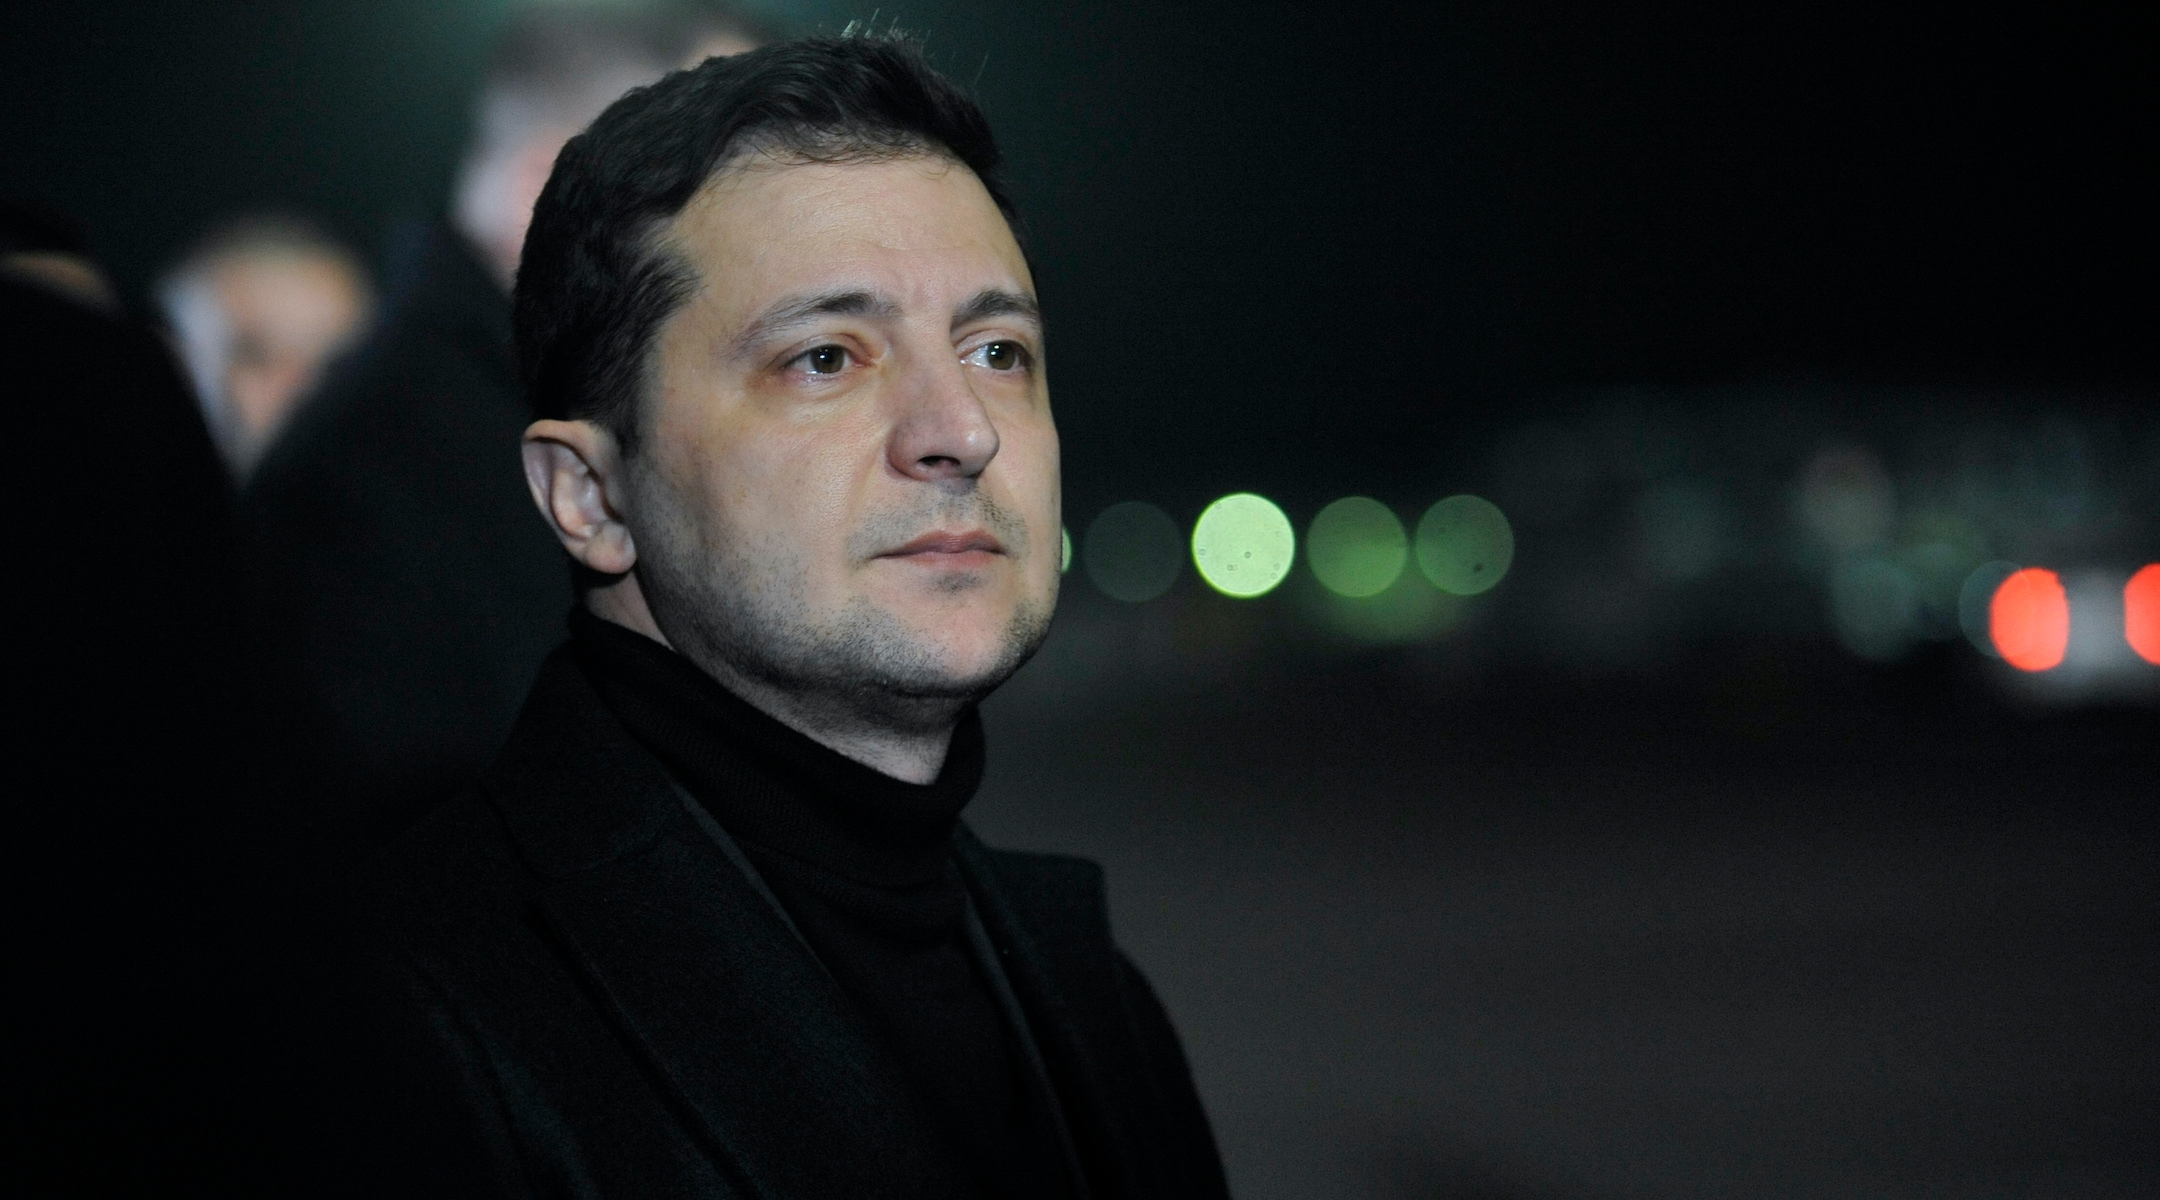 Prominent rabbis pray for Ukrainian President Zelensky, who is recovering from COVID-19